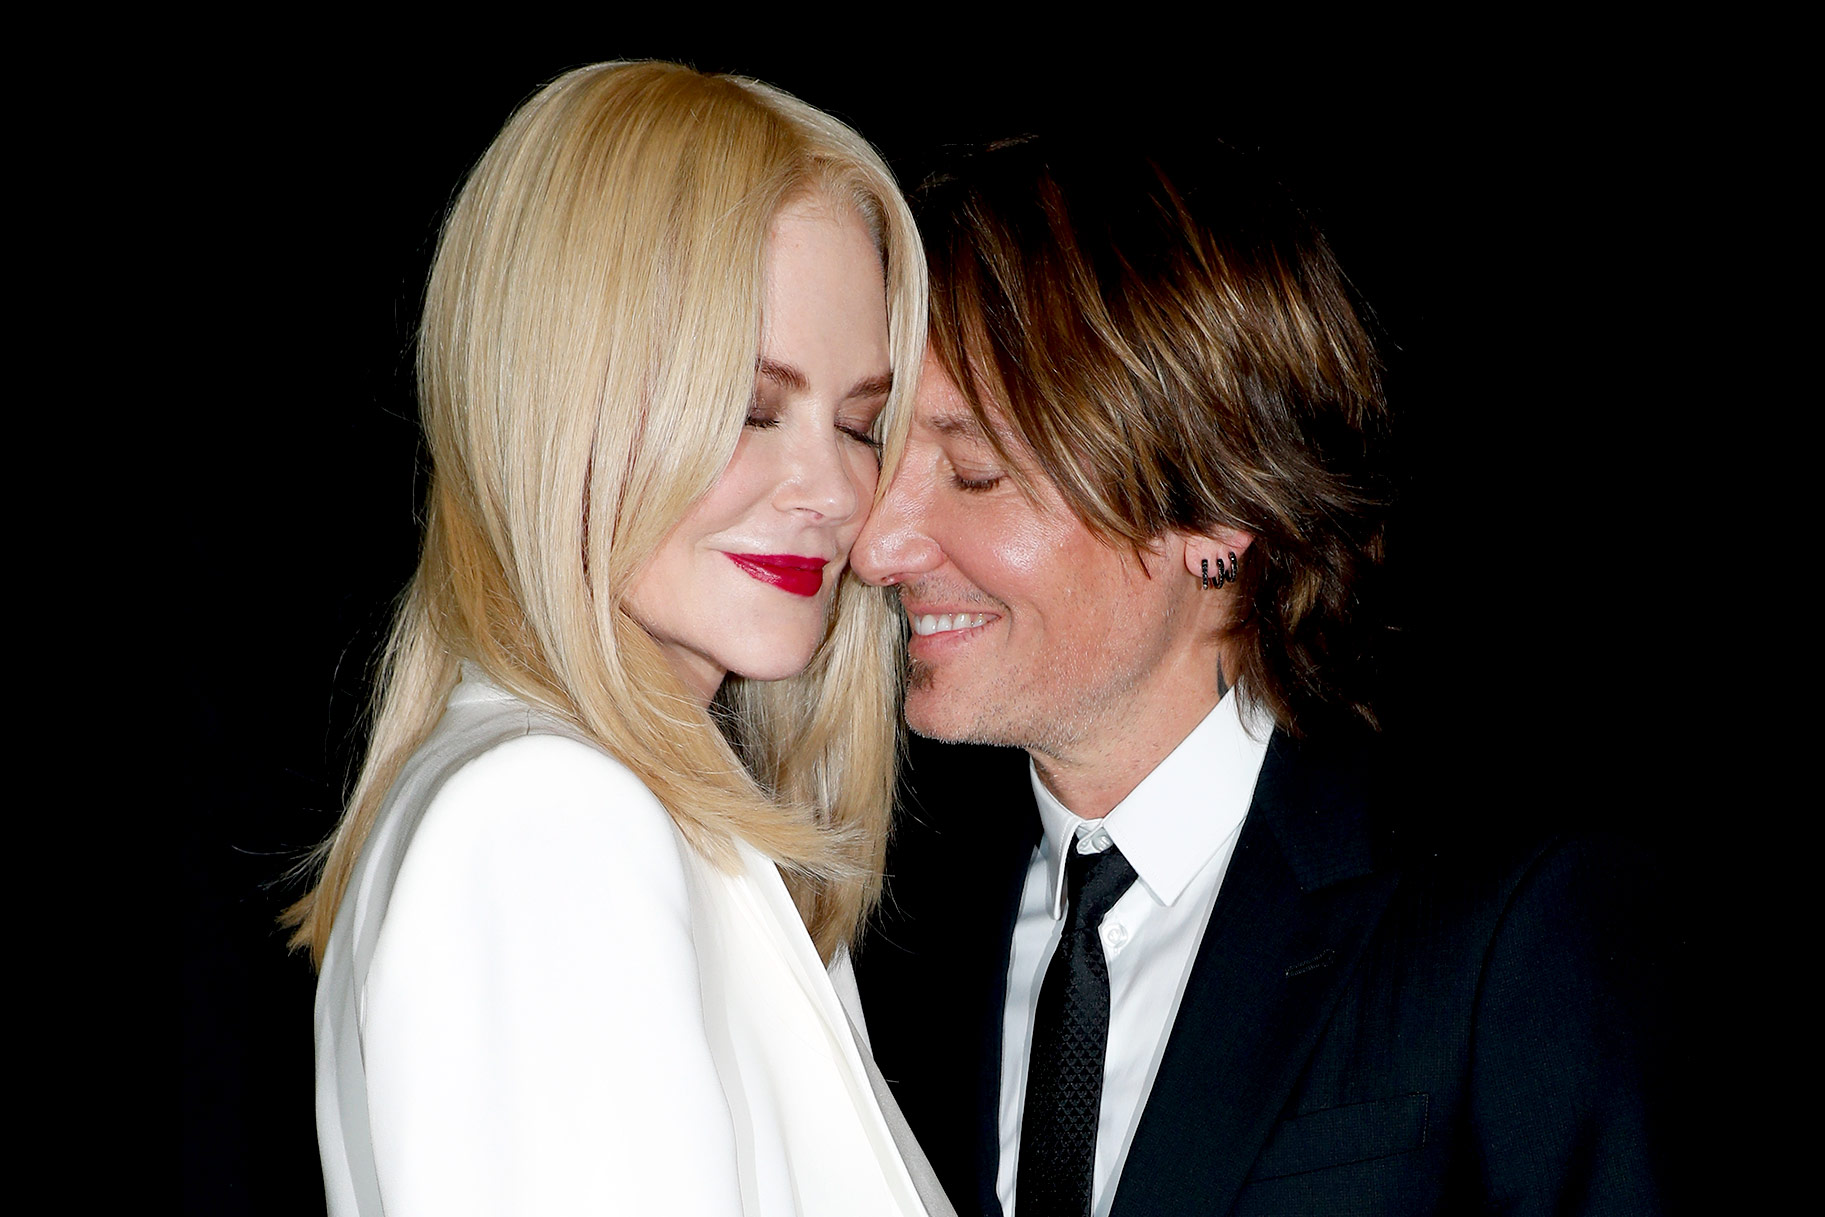 Nicole Kidman is very Angry over Keith Urban Cheating on Her